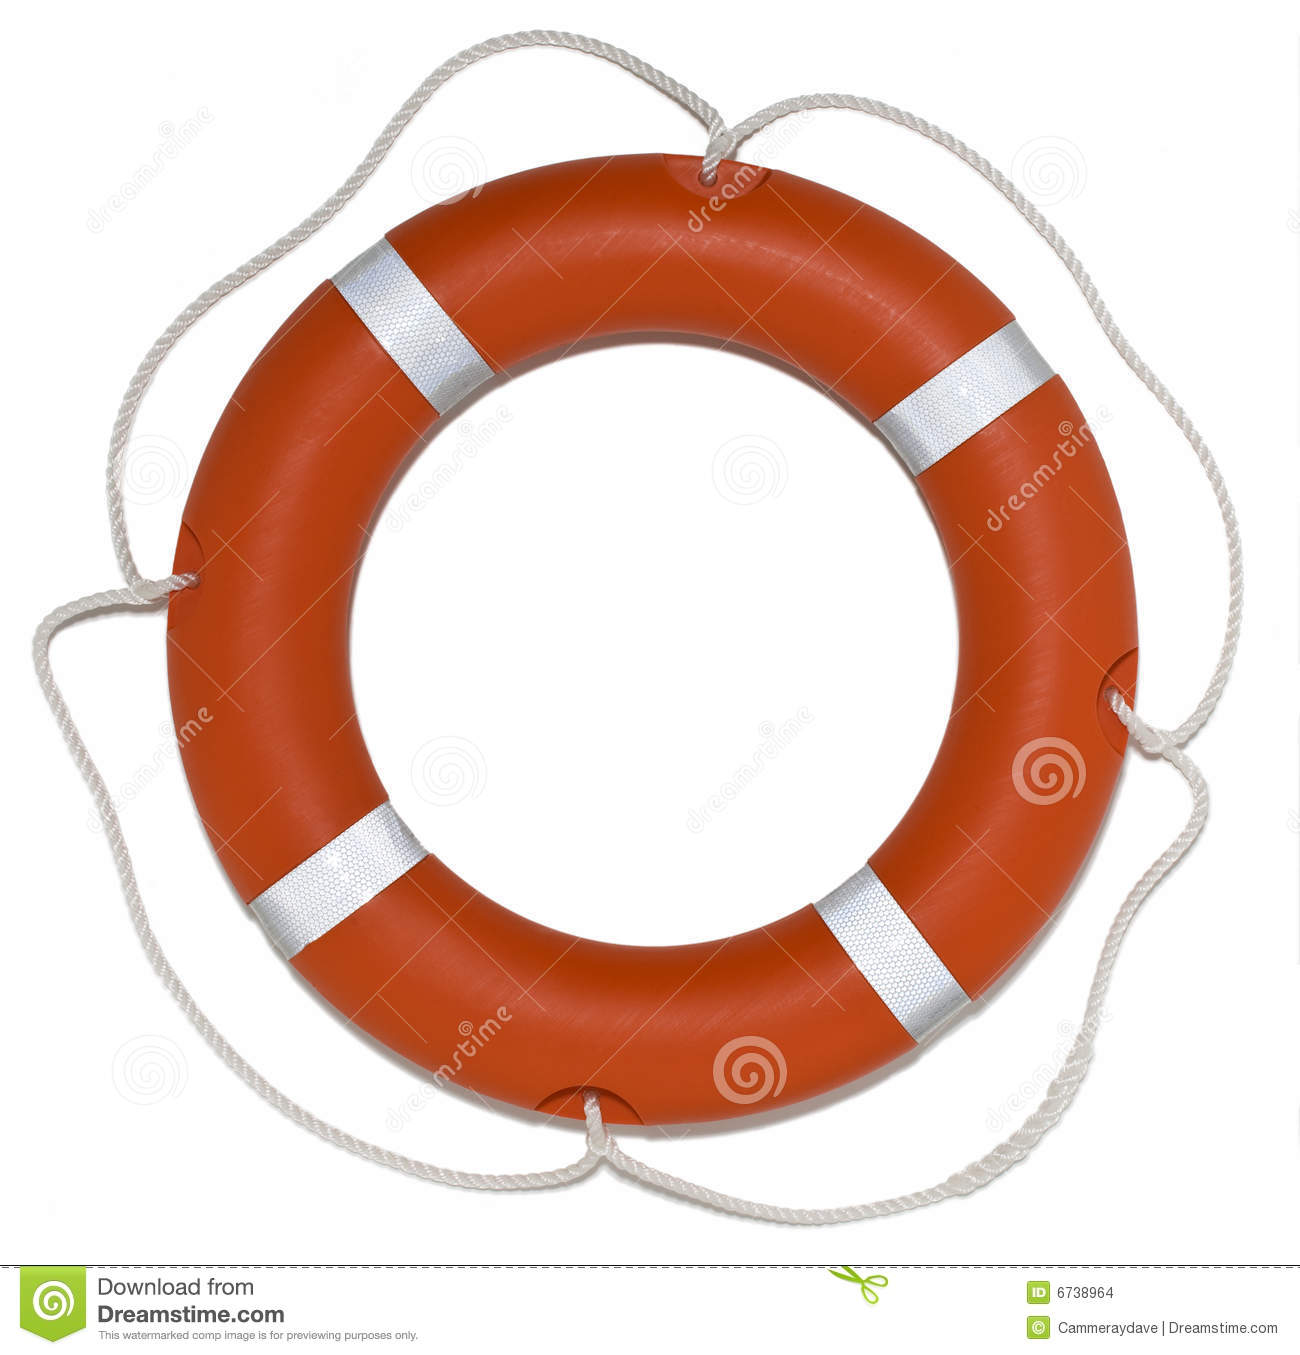 Lifebuoy Ring Preserver Lifesaver Stock Images - Image: 6738964